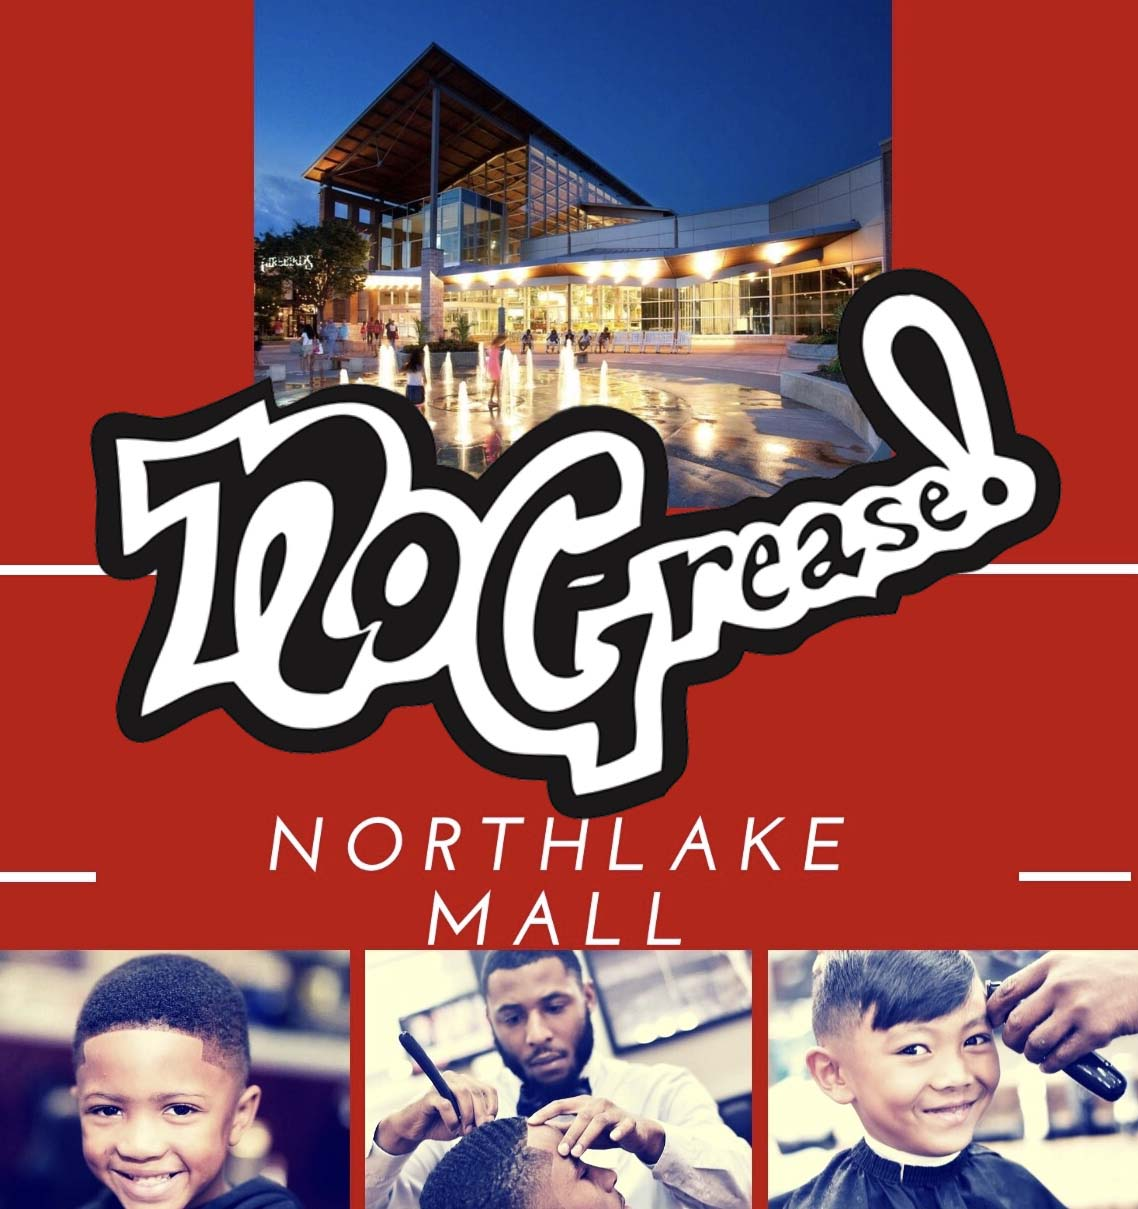 Locations – No Grease, Inc   We're Not Your Ordinary Barbershop